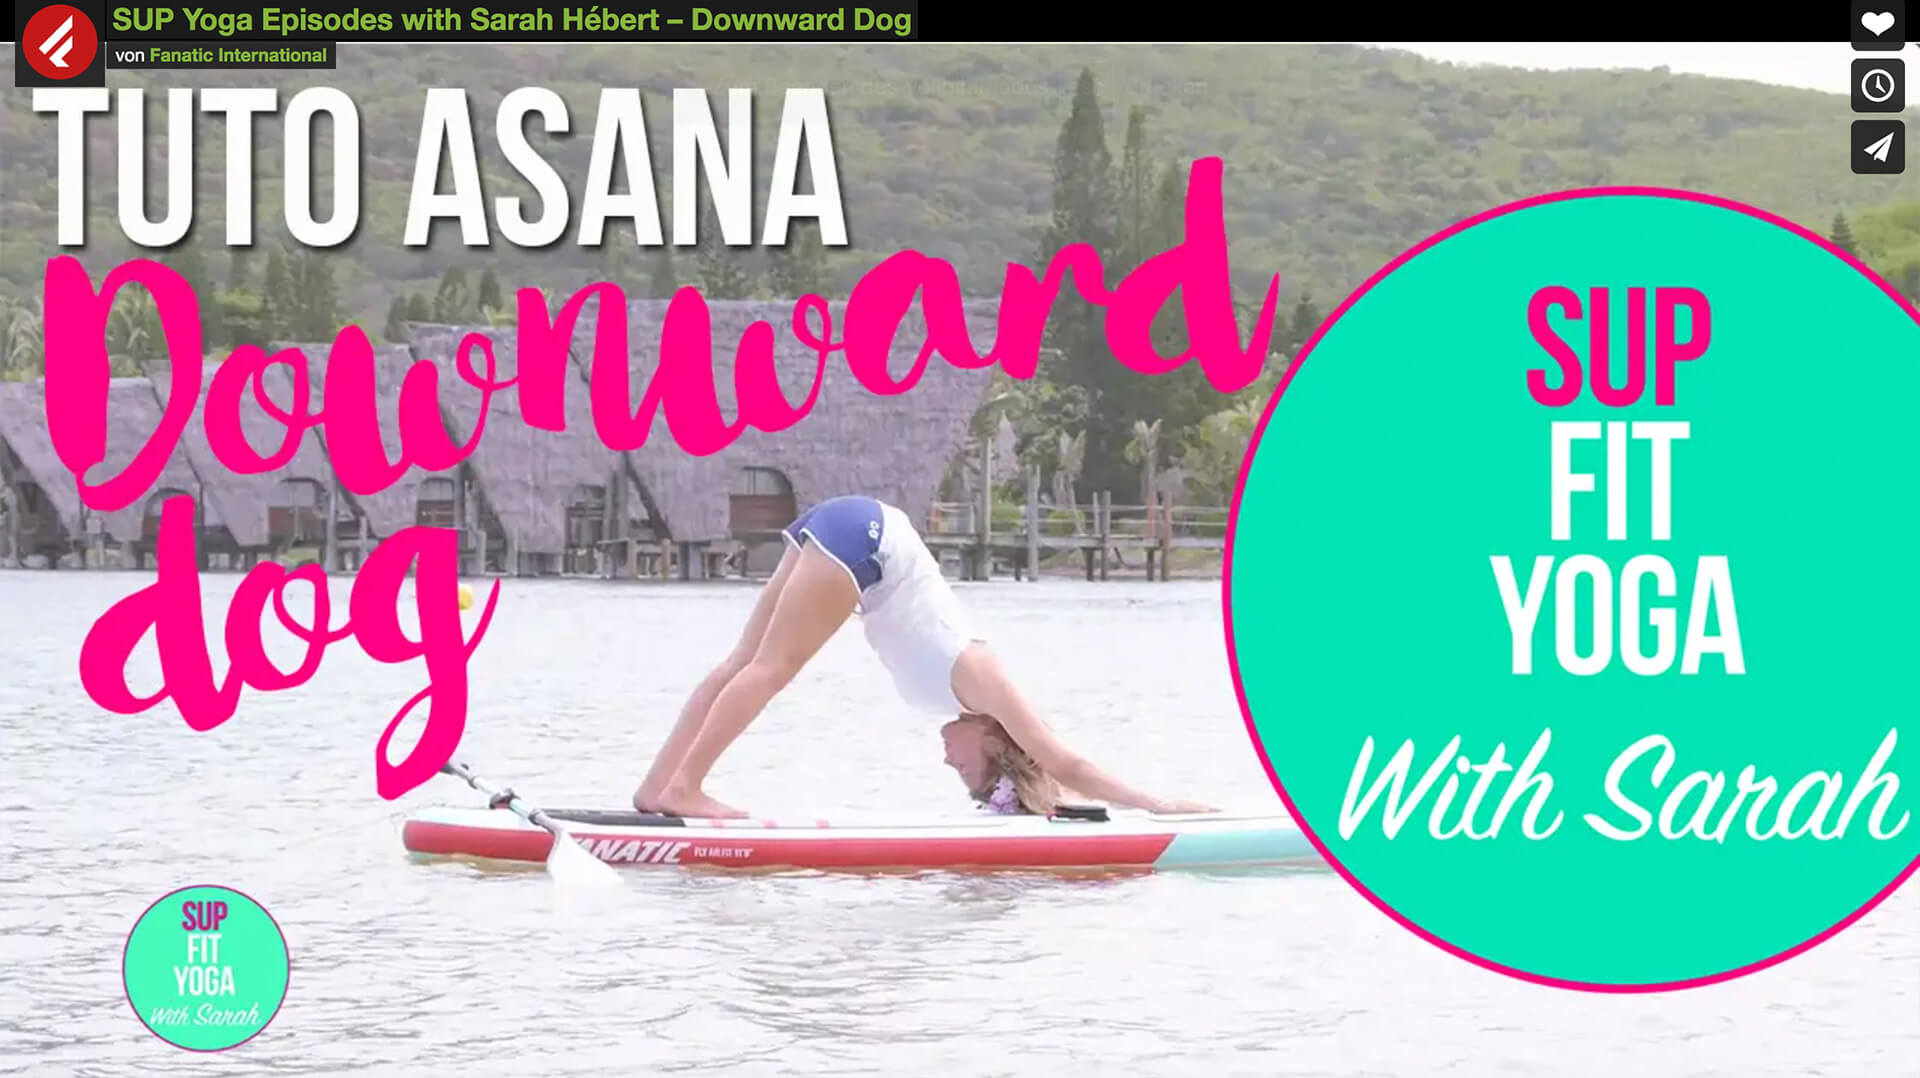 Fanatic SUP Yoga with Sarah Part 3